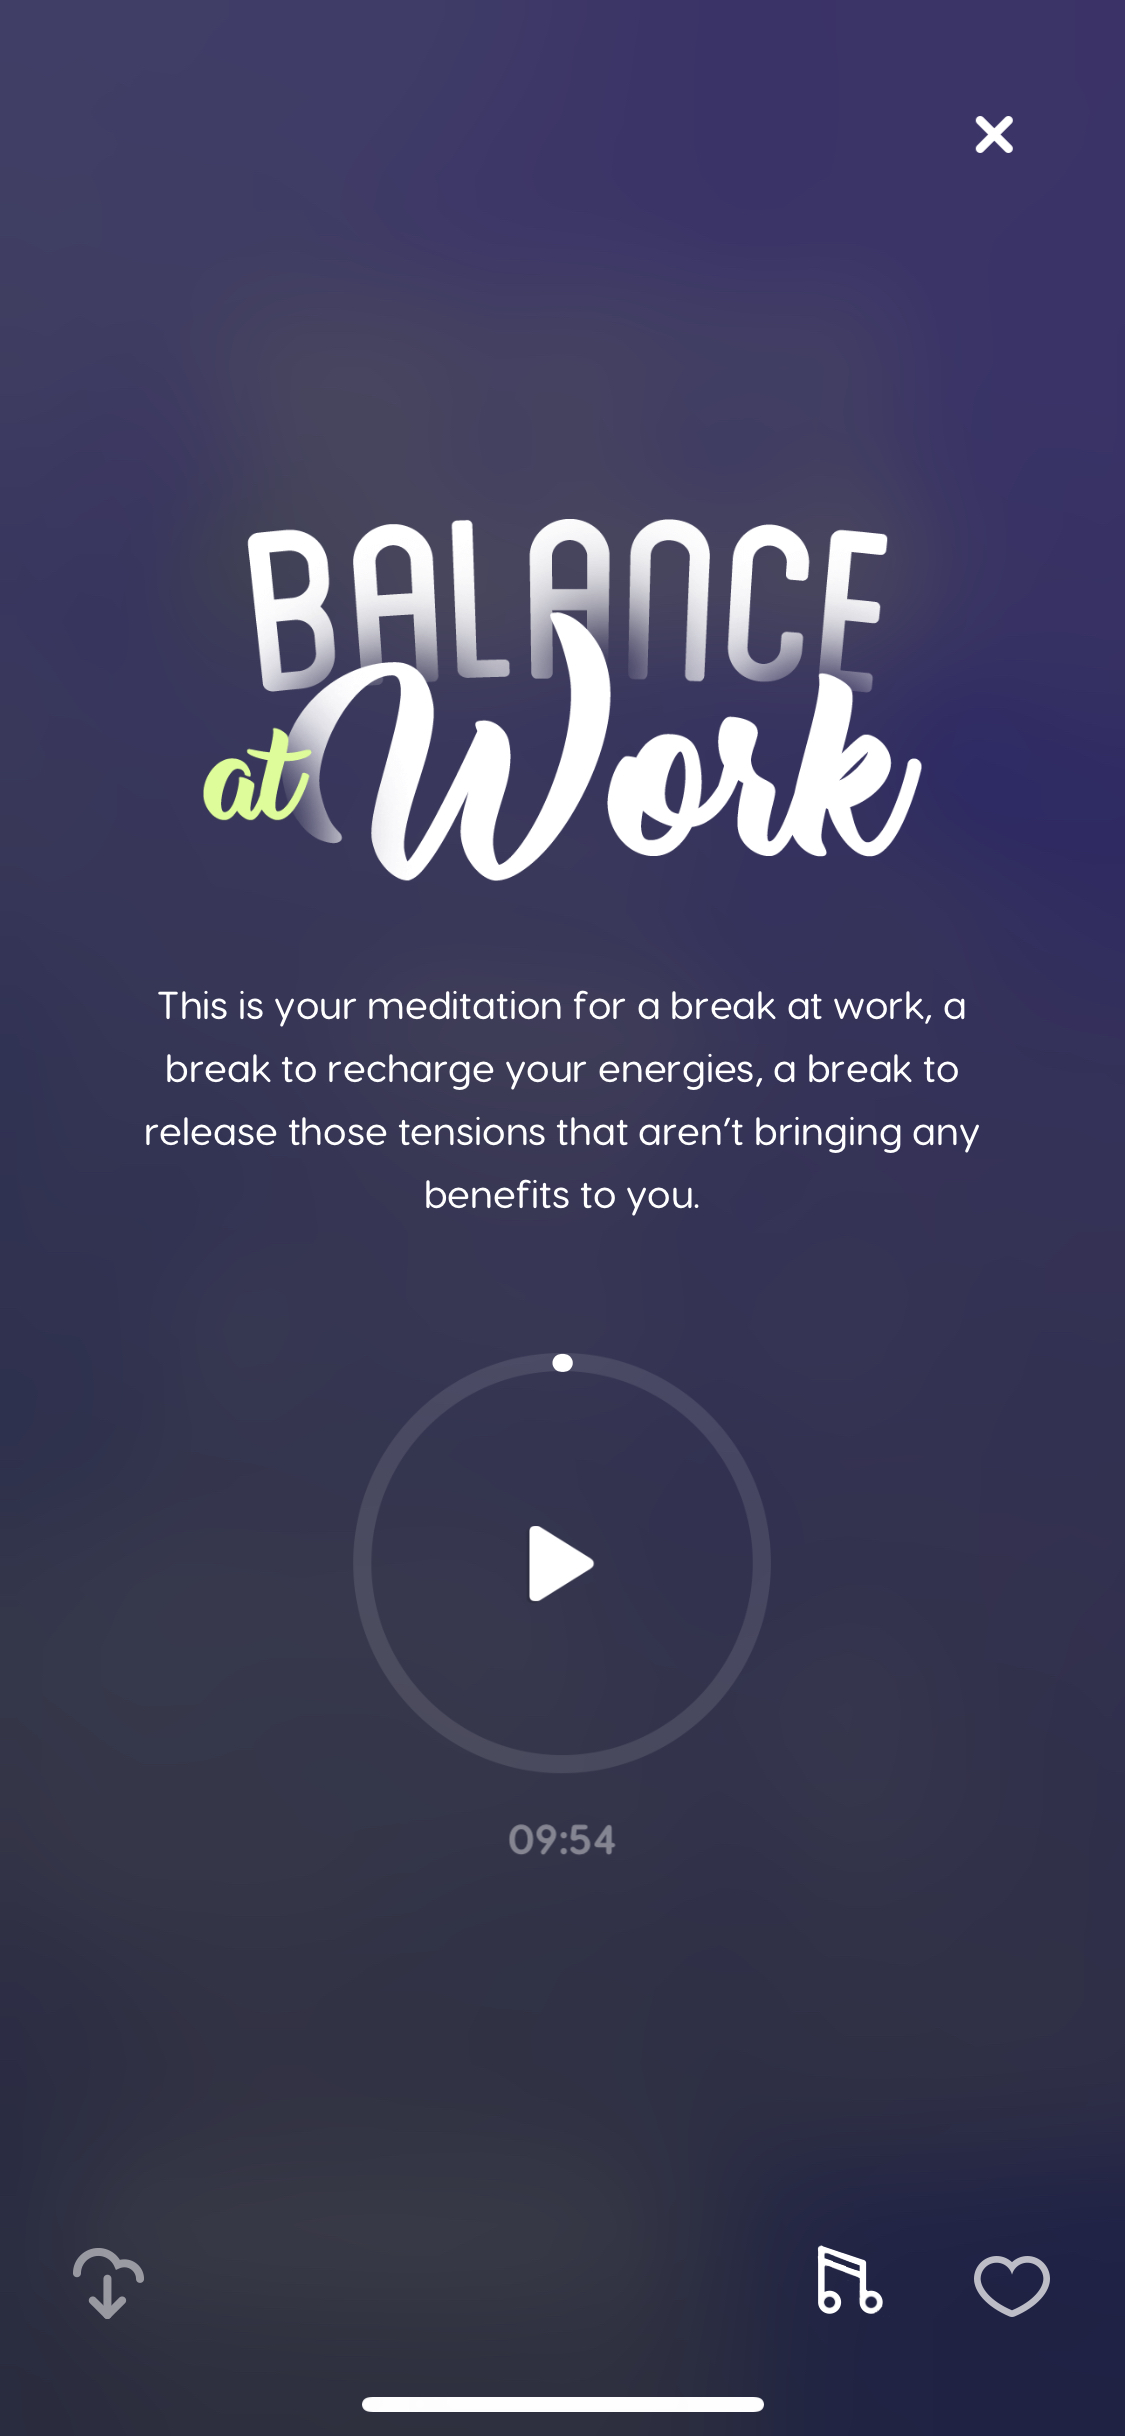 Balance at work meditation